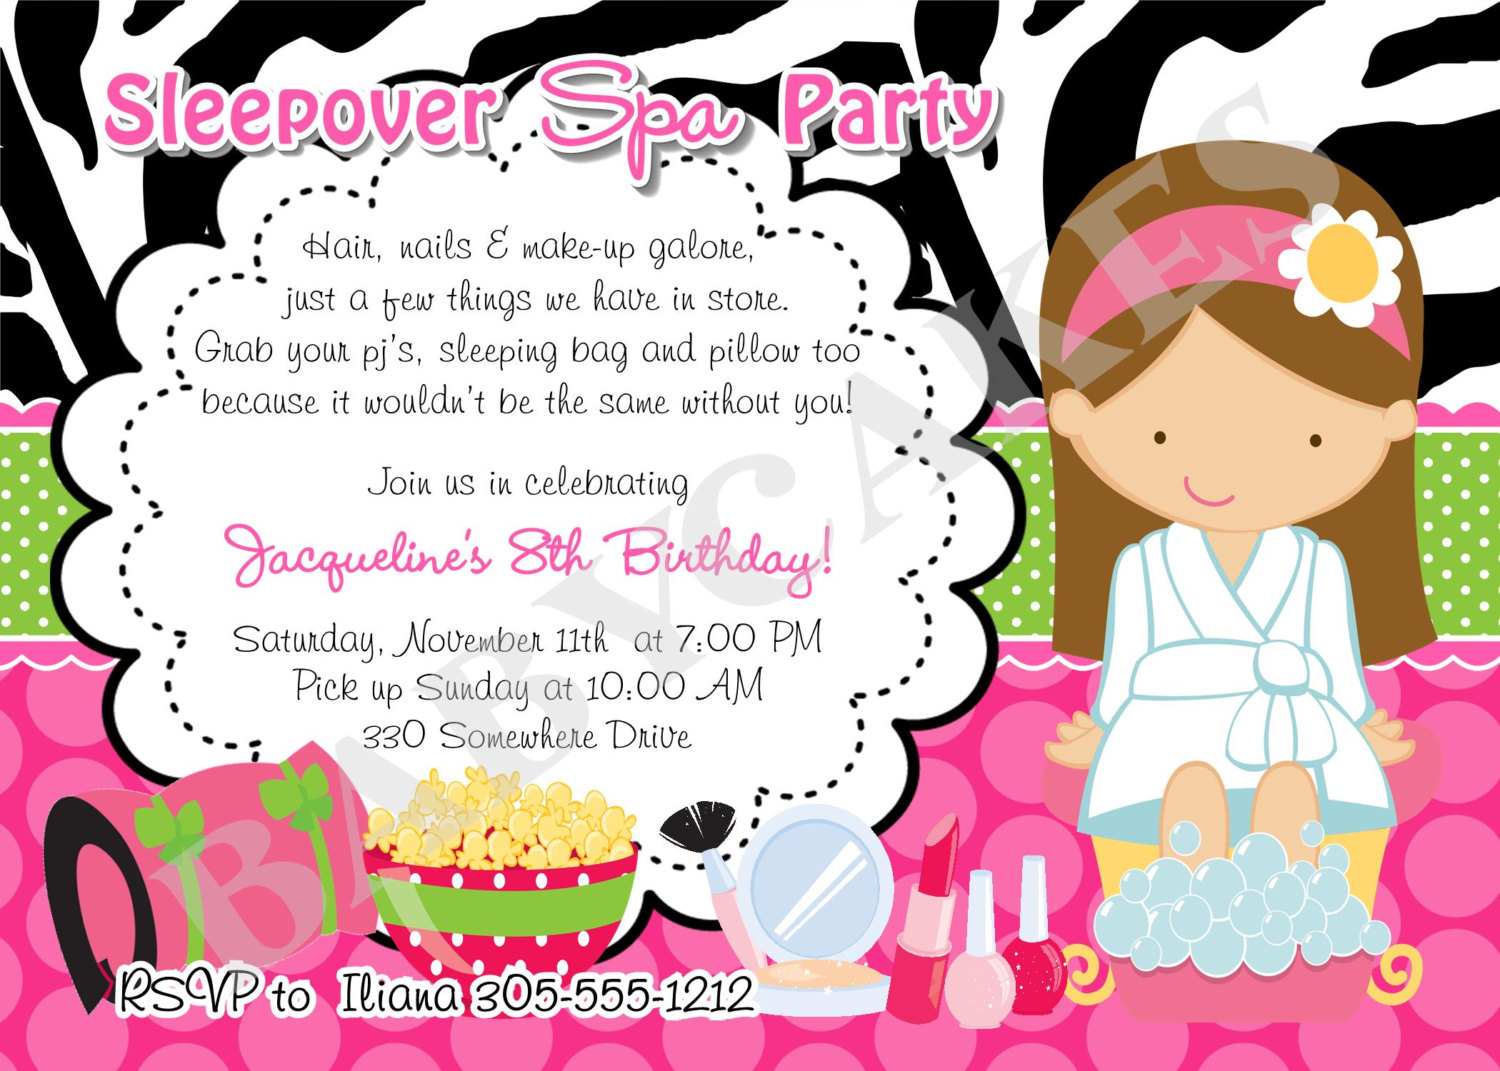 blog page of mickey mouse invitations templates printable spa birthday party invitations middot 10 best images about spa party